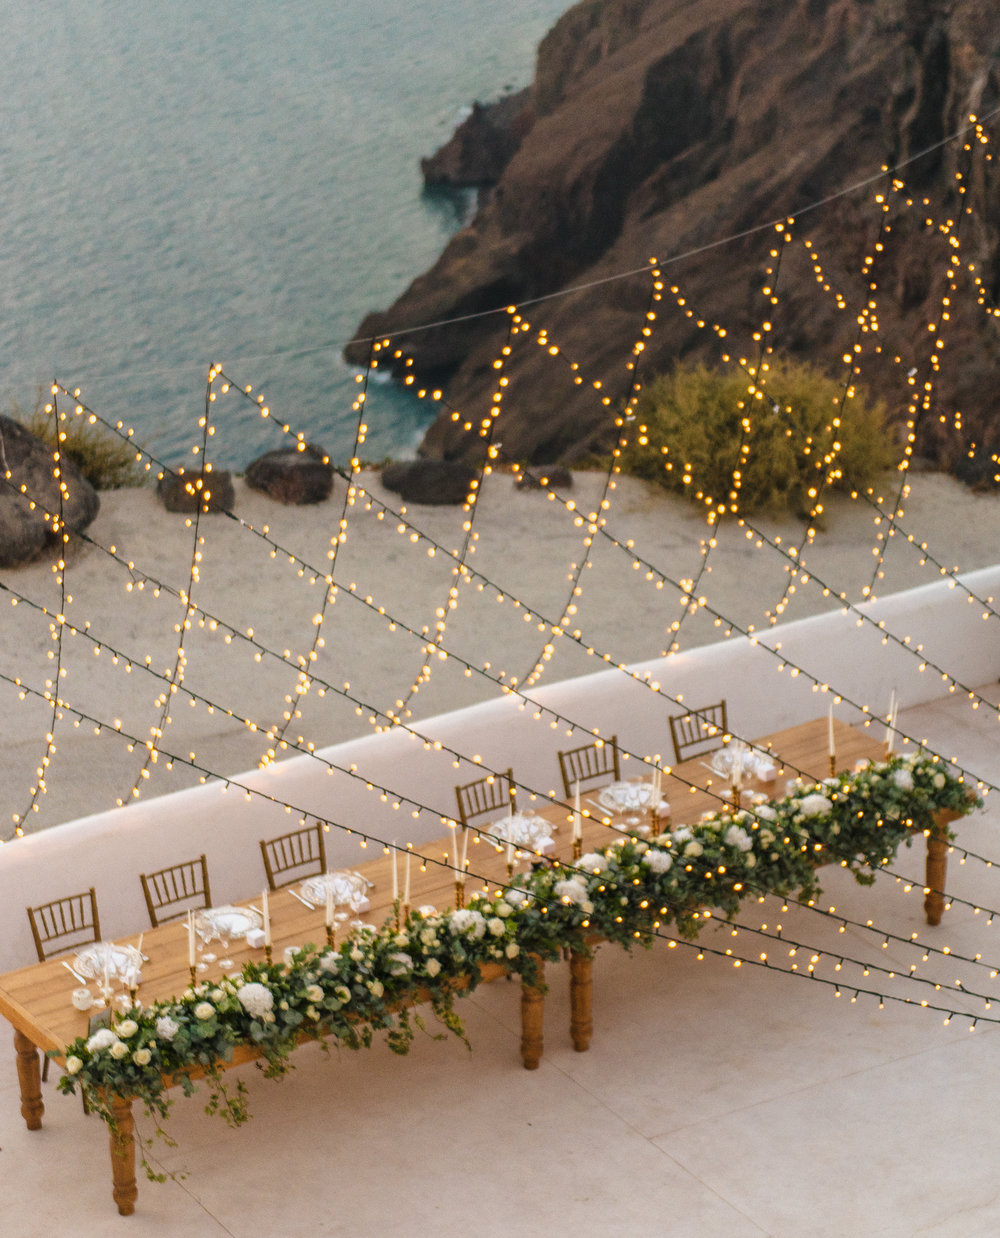 santorini-island-greece-wedding-dinner-celebration-ceremony-groom-brid-sunset-wedding-table-crystal-charger-plate-arrangement-mini-bulbs-rocabella-hotel-silkentile-event-planning-firm